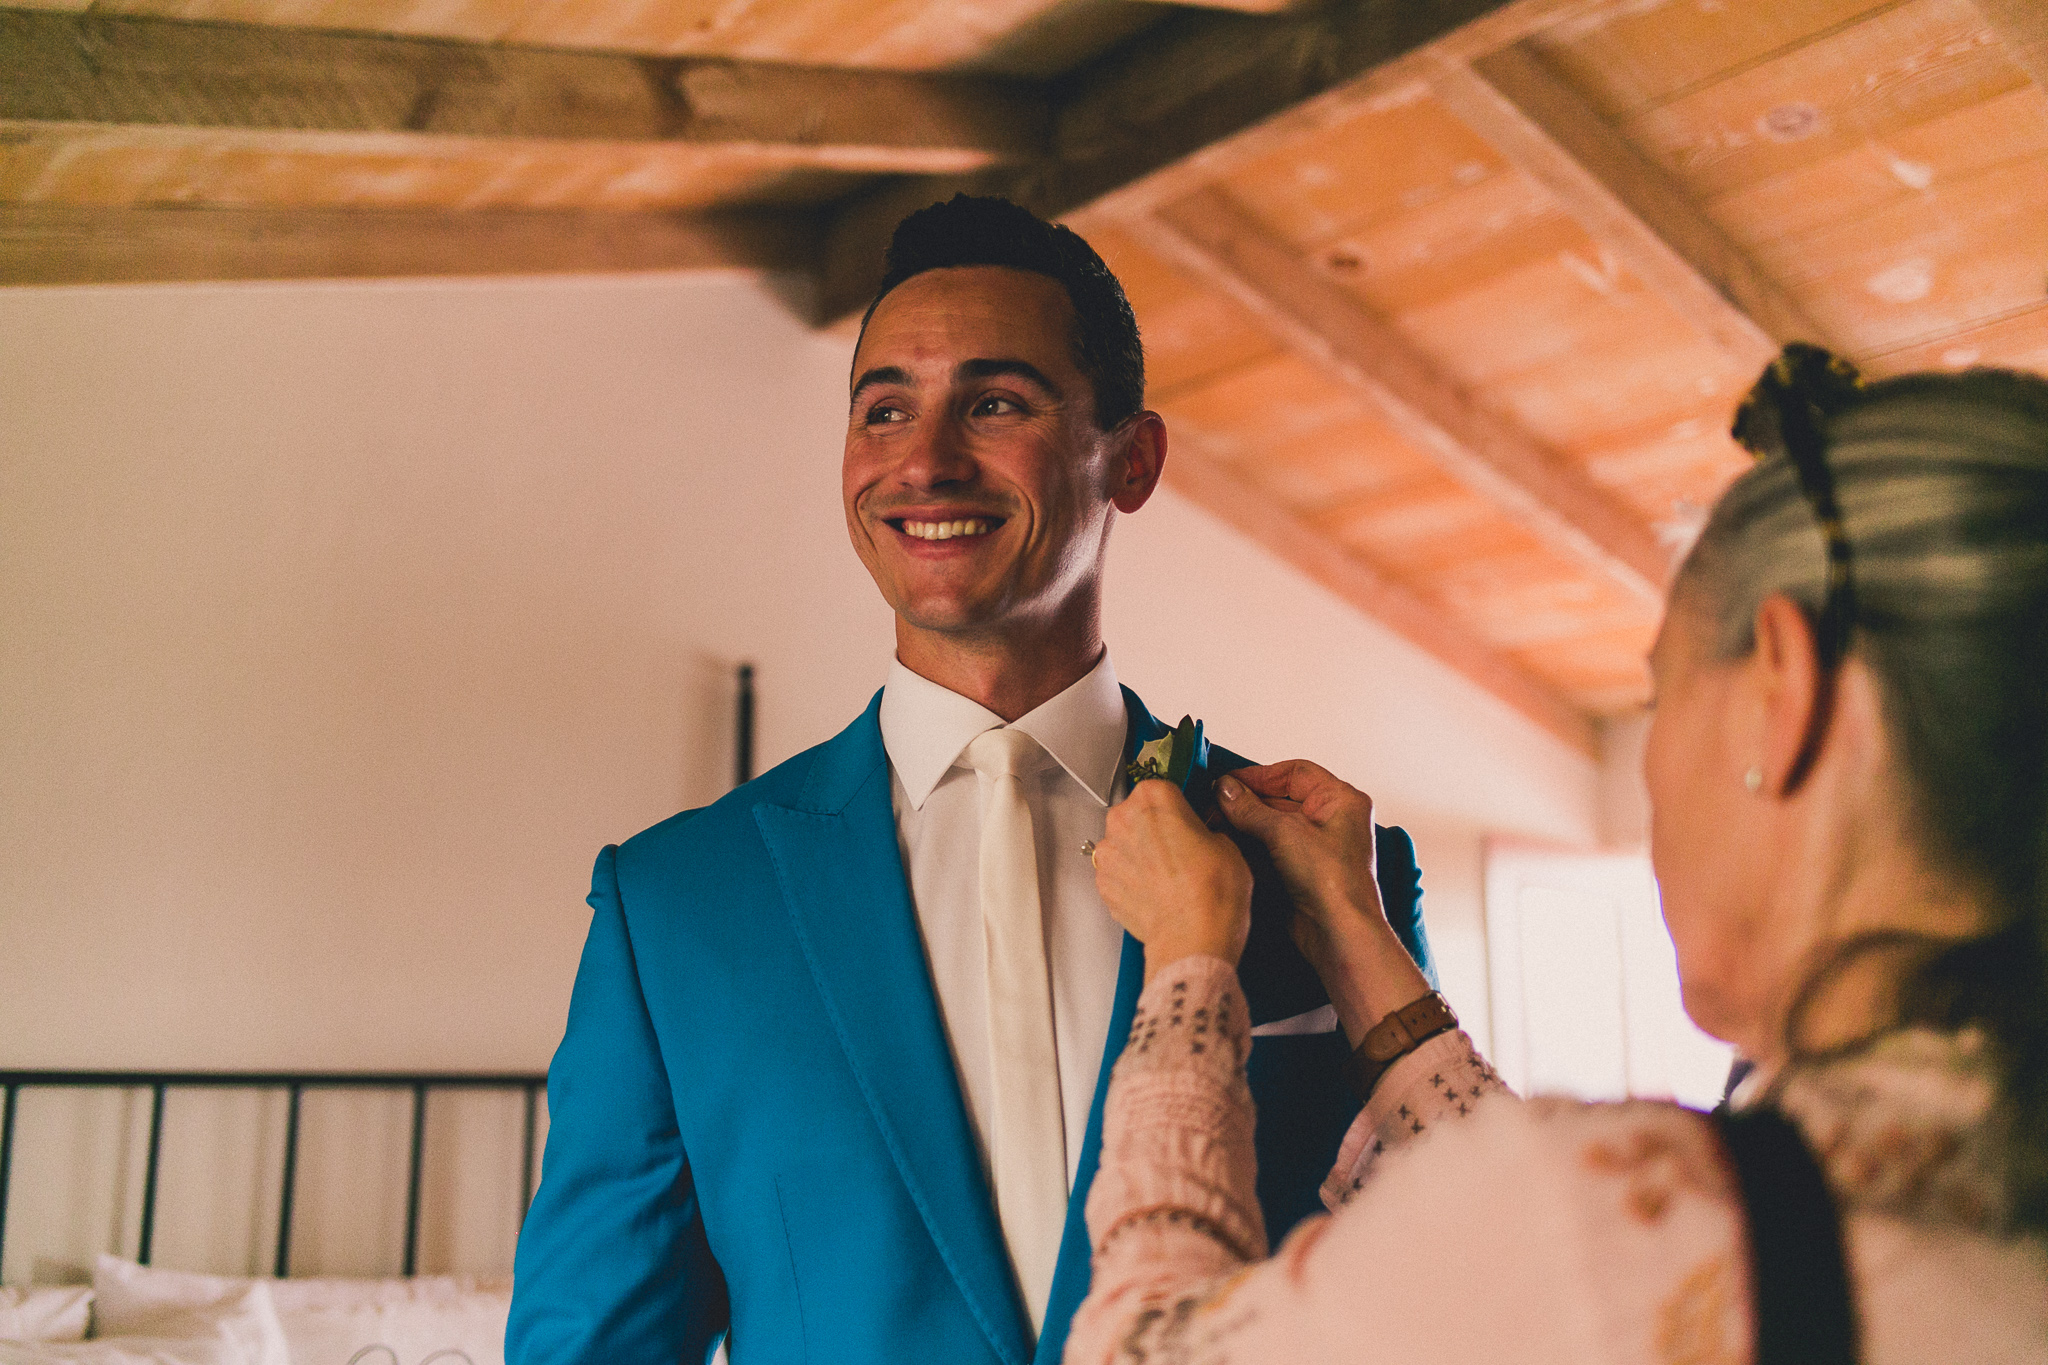 The groom getting fitted